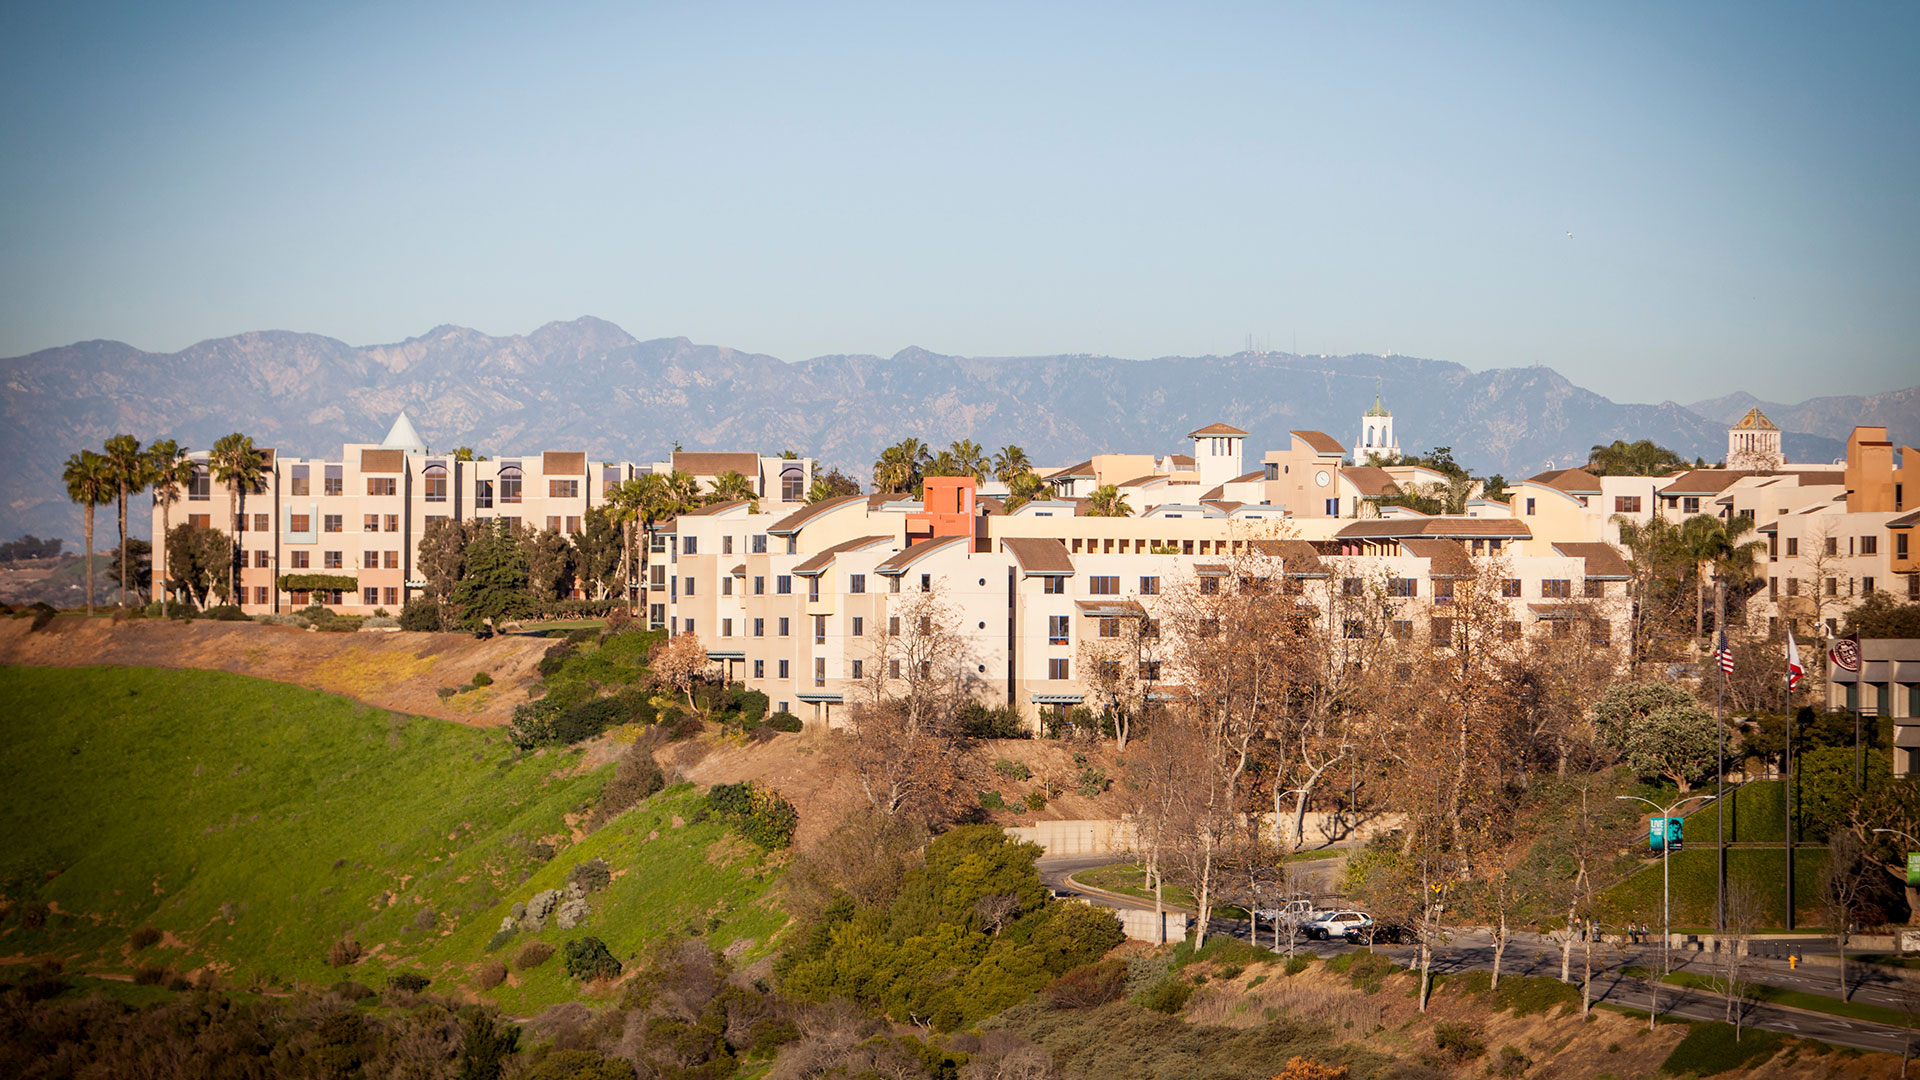 LMU as the University of Silicon Beach